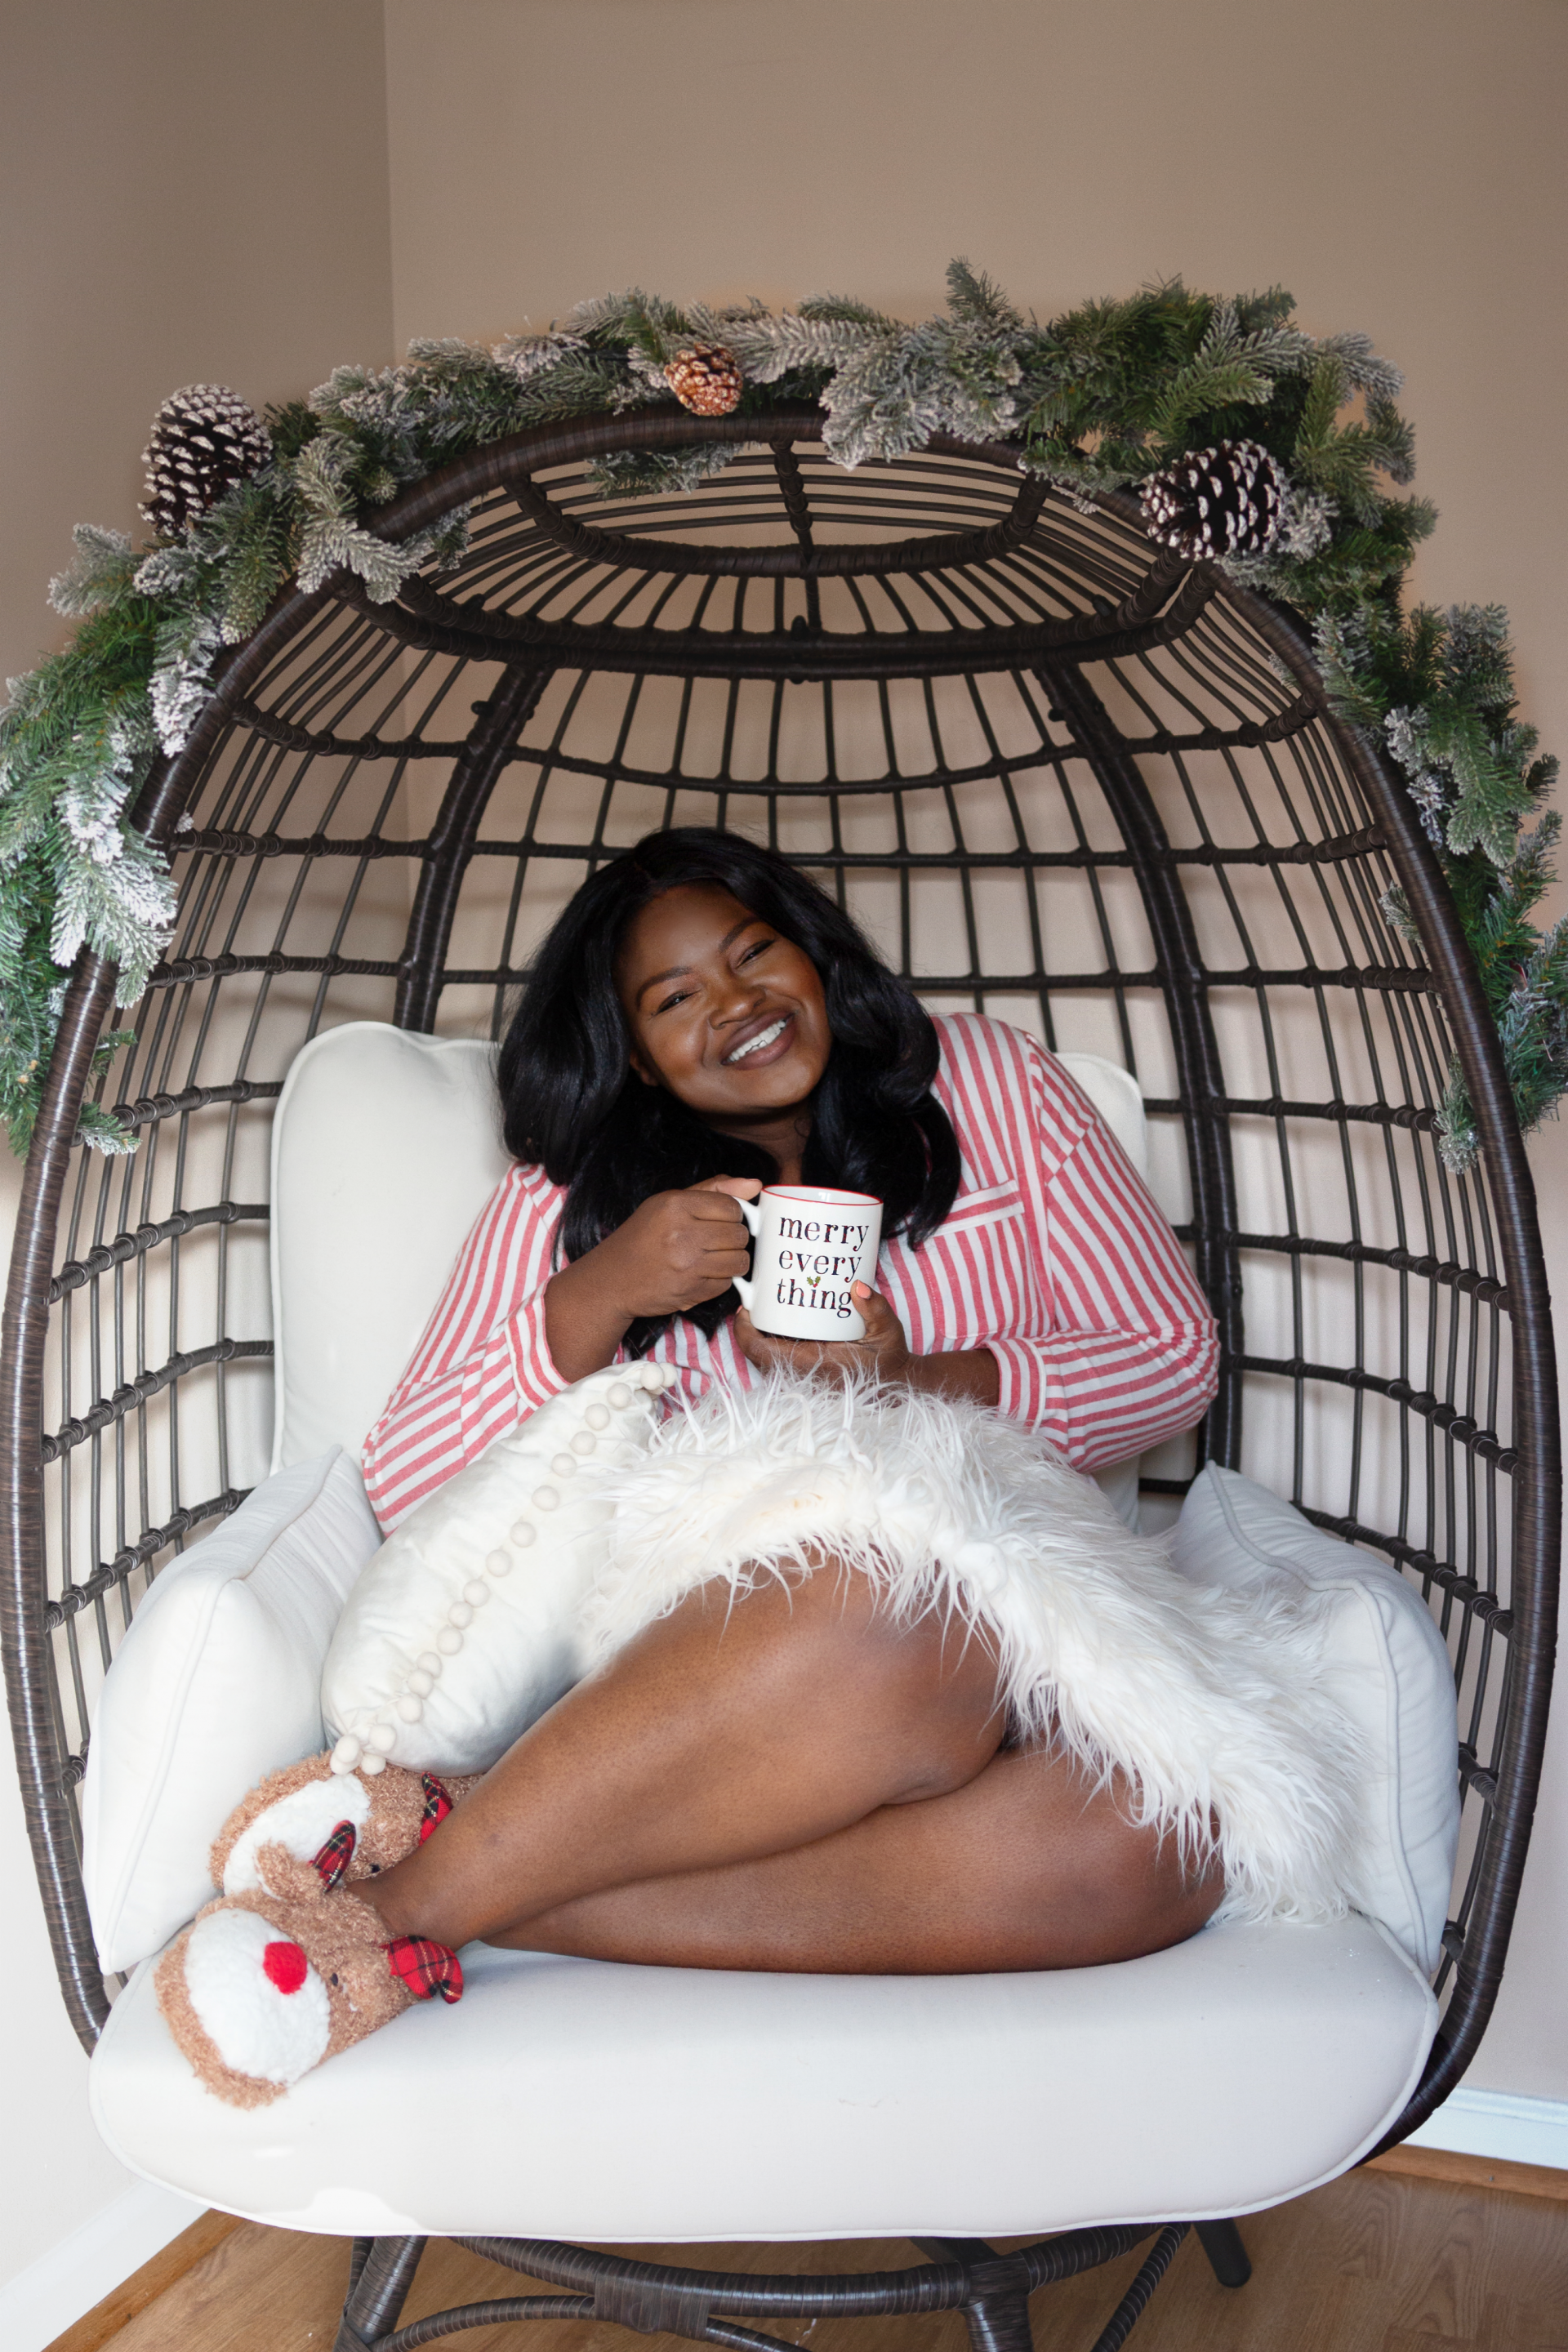 christmas decor picks from supplechic a fashion and lifestyle blog based in baltimore